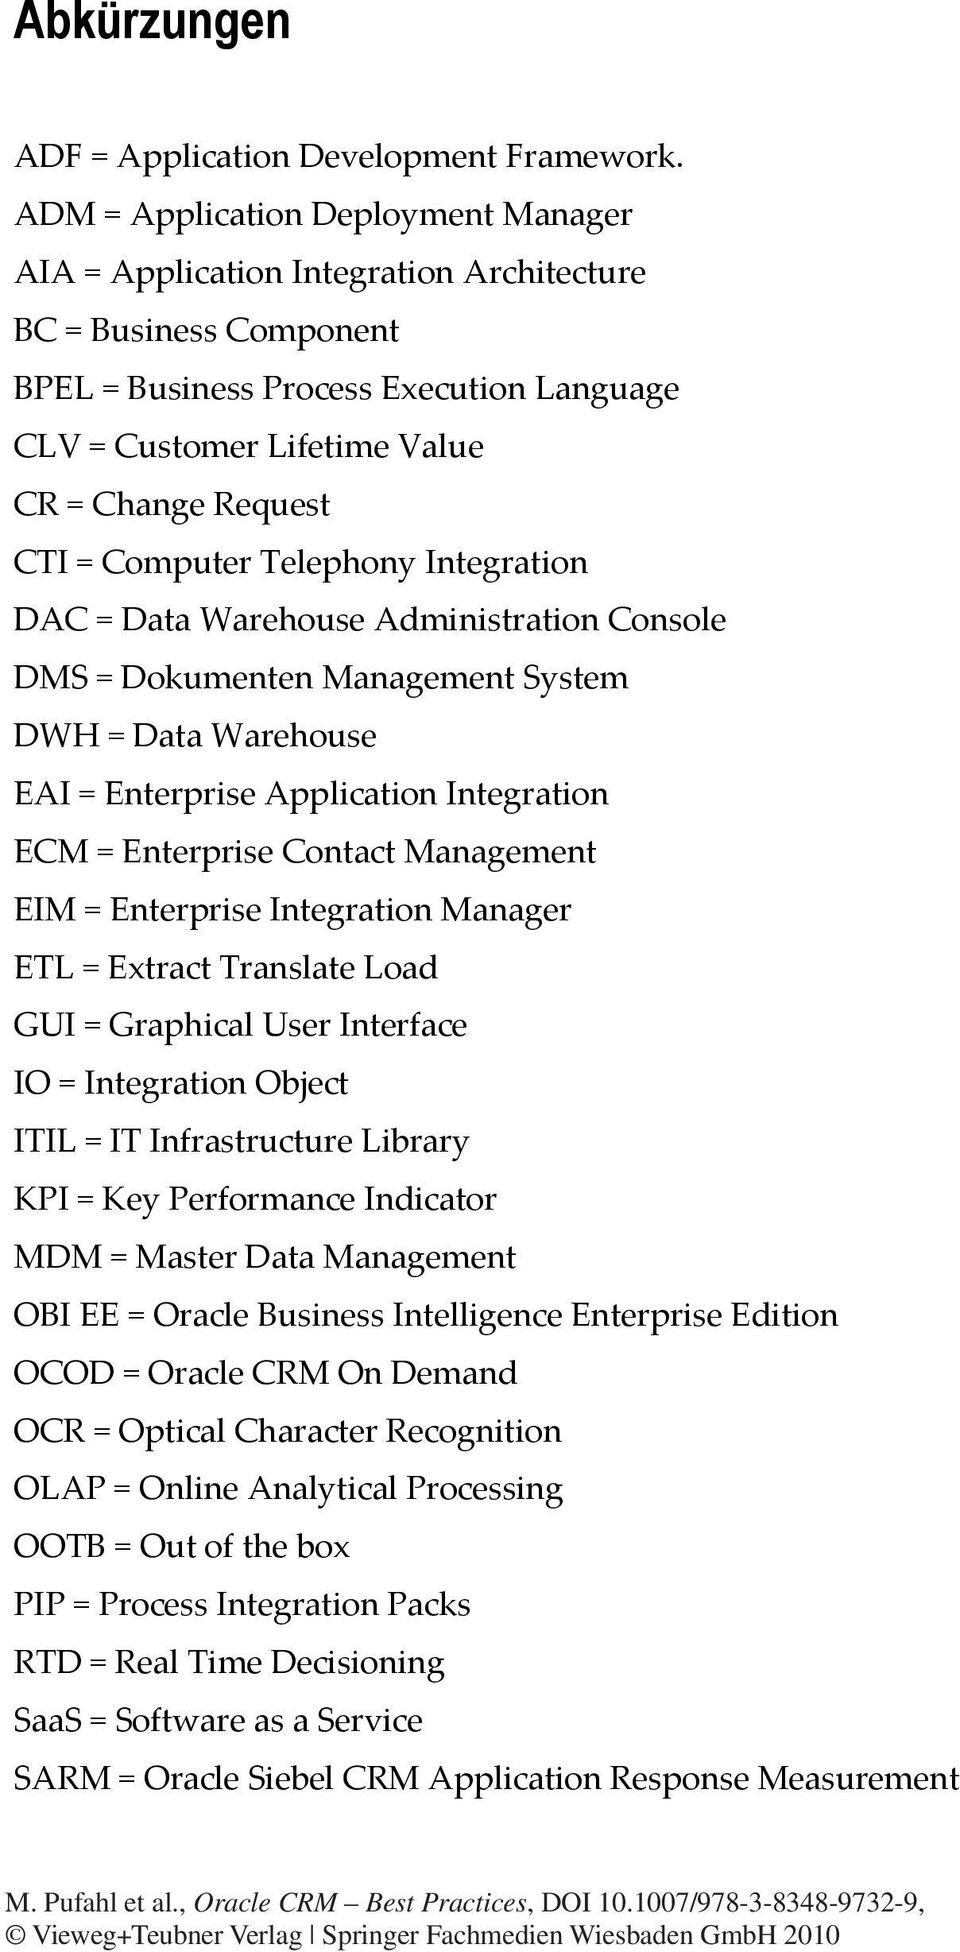 CTI = Computer Telephony Integration DAC = Data Warehouse Administration Console DMS = Dokumenten Management System DWH = Data Warehouse EAI = Enterprise Application Integration ECM = Enterprise